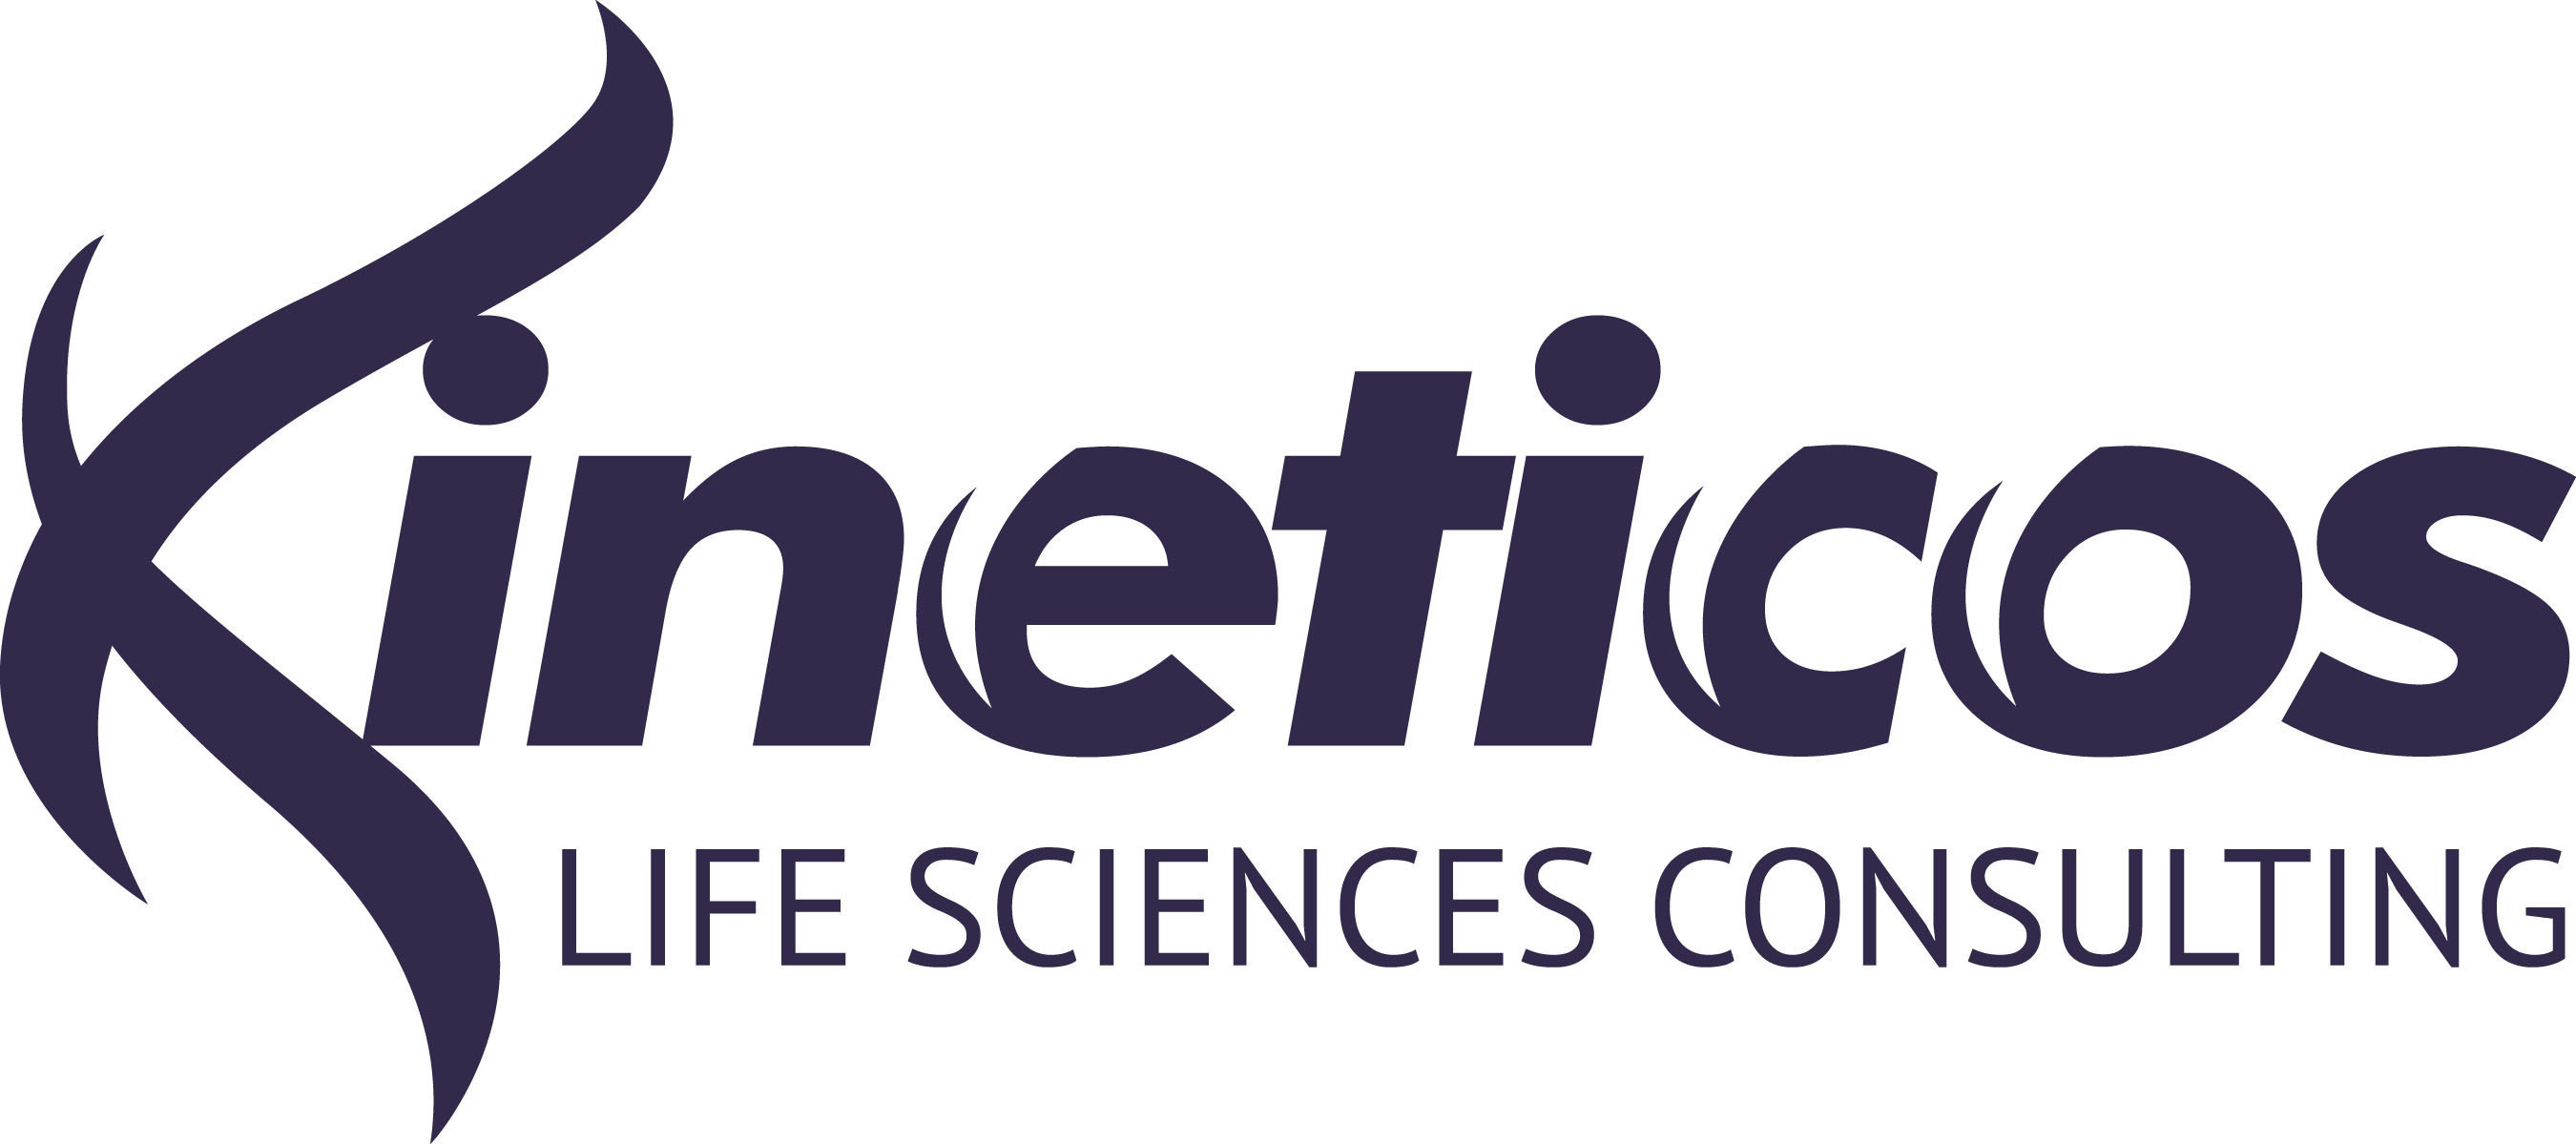 Kineticos is a specialized management consulting firm serving the life science industry.